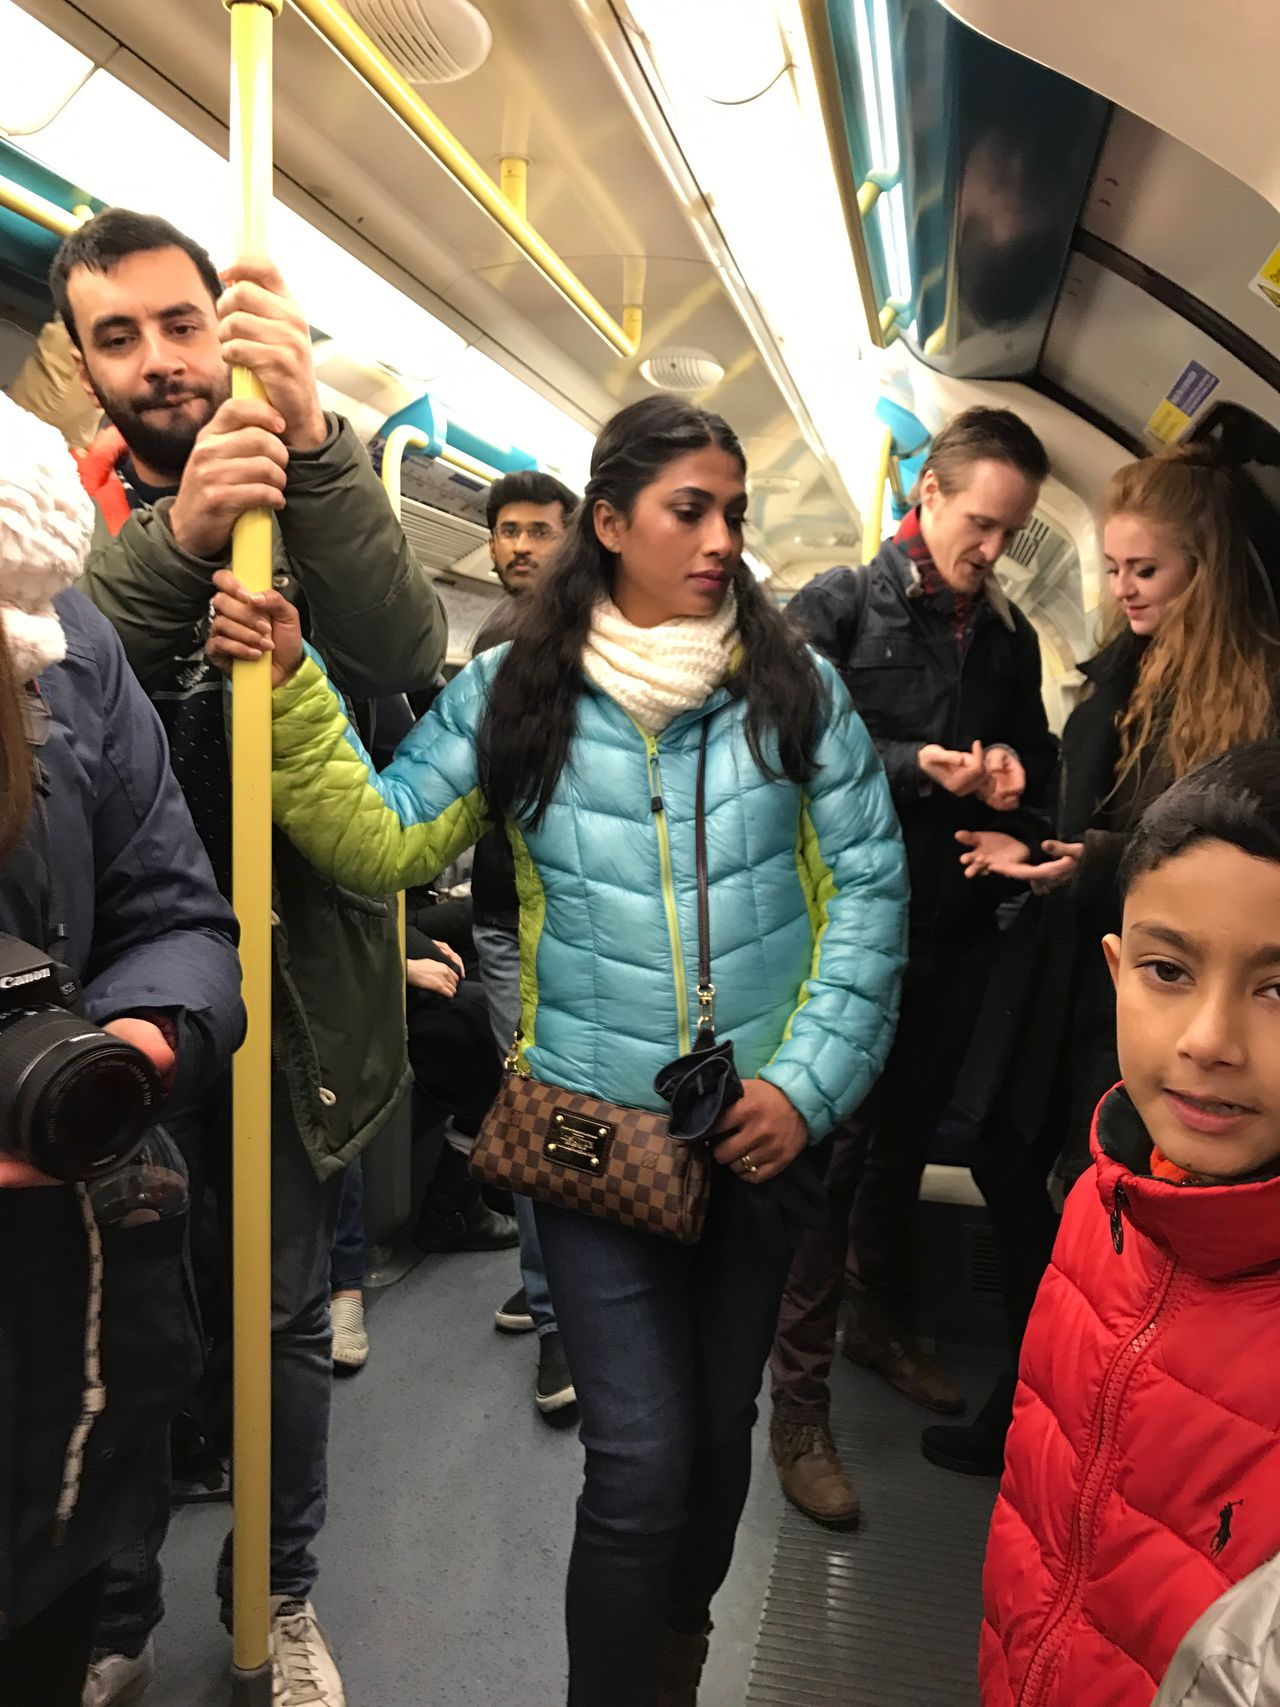 Travel Subway Train Transportation Commuter Group Of People Passenger Public Transportation Rush Hour Large Group Of People Standing Train - Vehicle Crowd Men Mode Of Transport Cultures City Women Adult People Adults Only Underground Nye2016